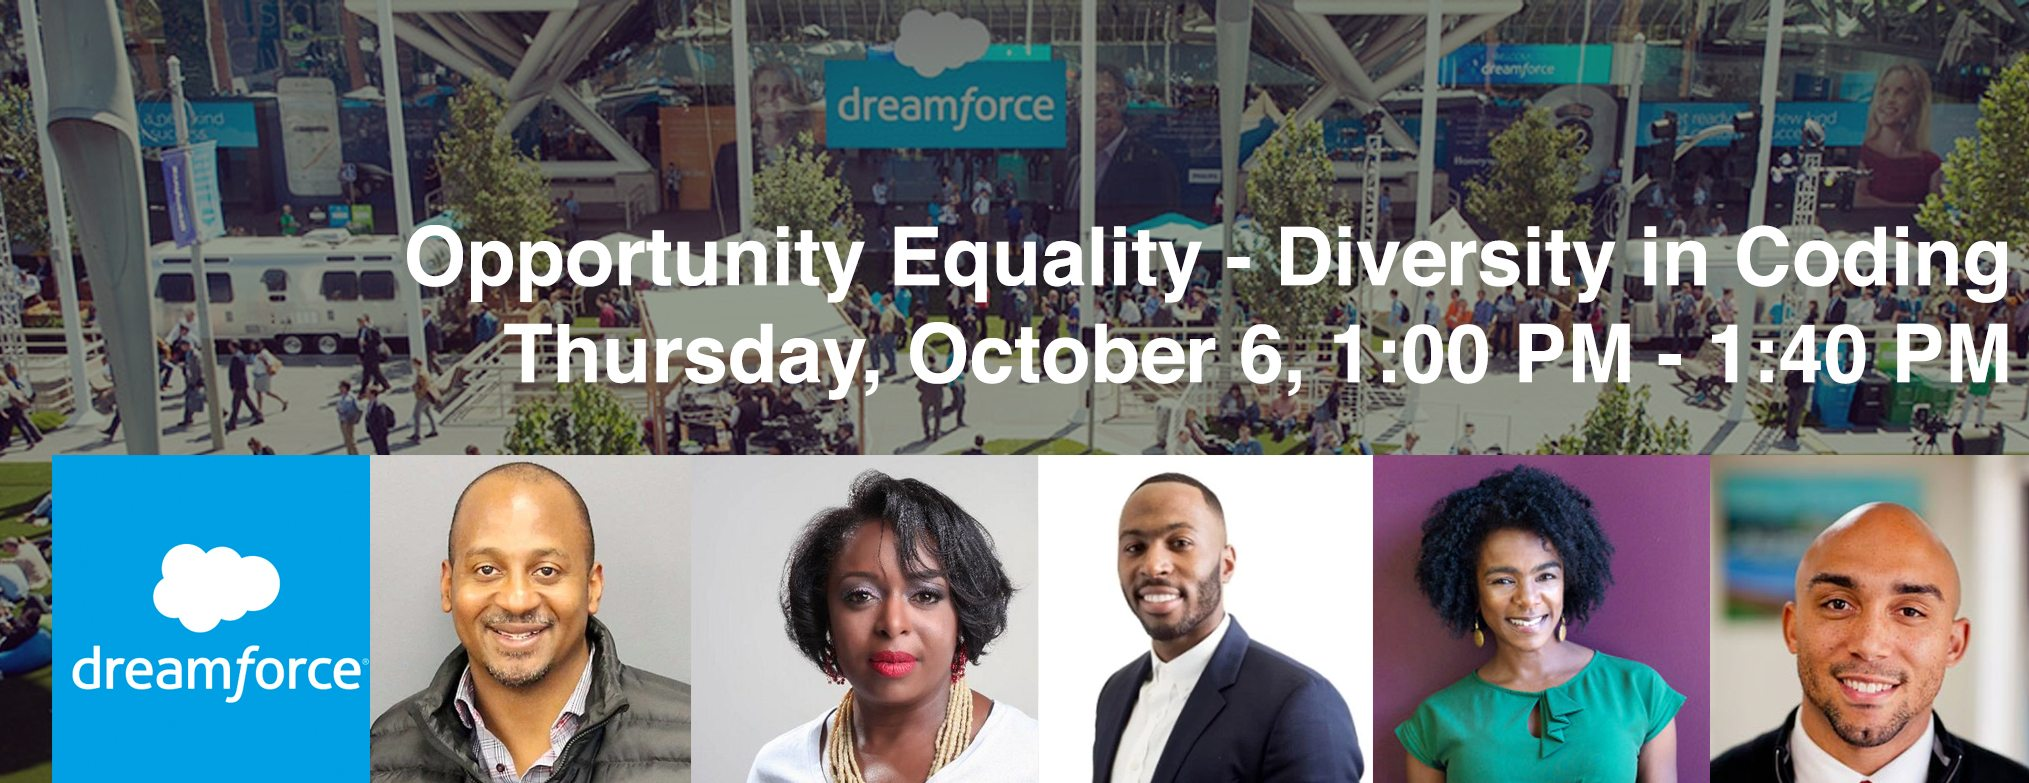 Dreamforce The Opportunity Equality — Diversity in Coding Panel Thursday, October 6, 01:00 PM — Thursday, October 6, 01:40 PM